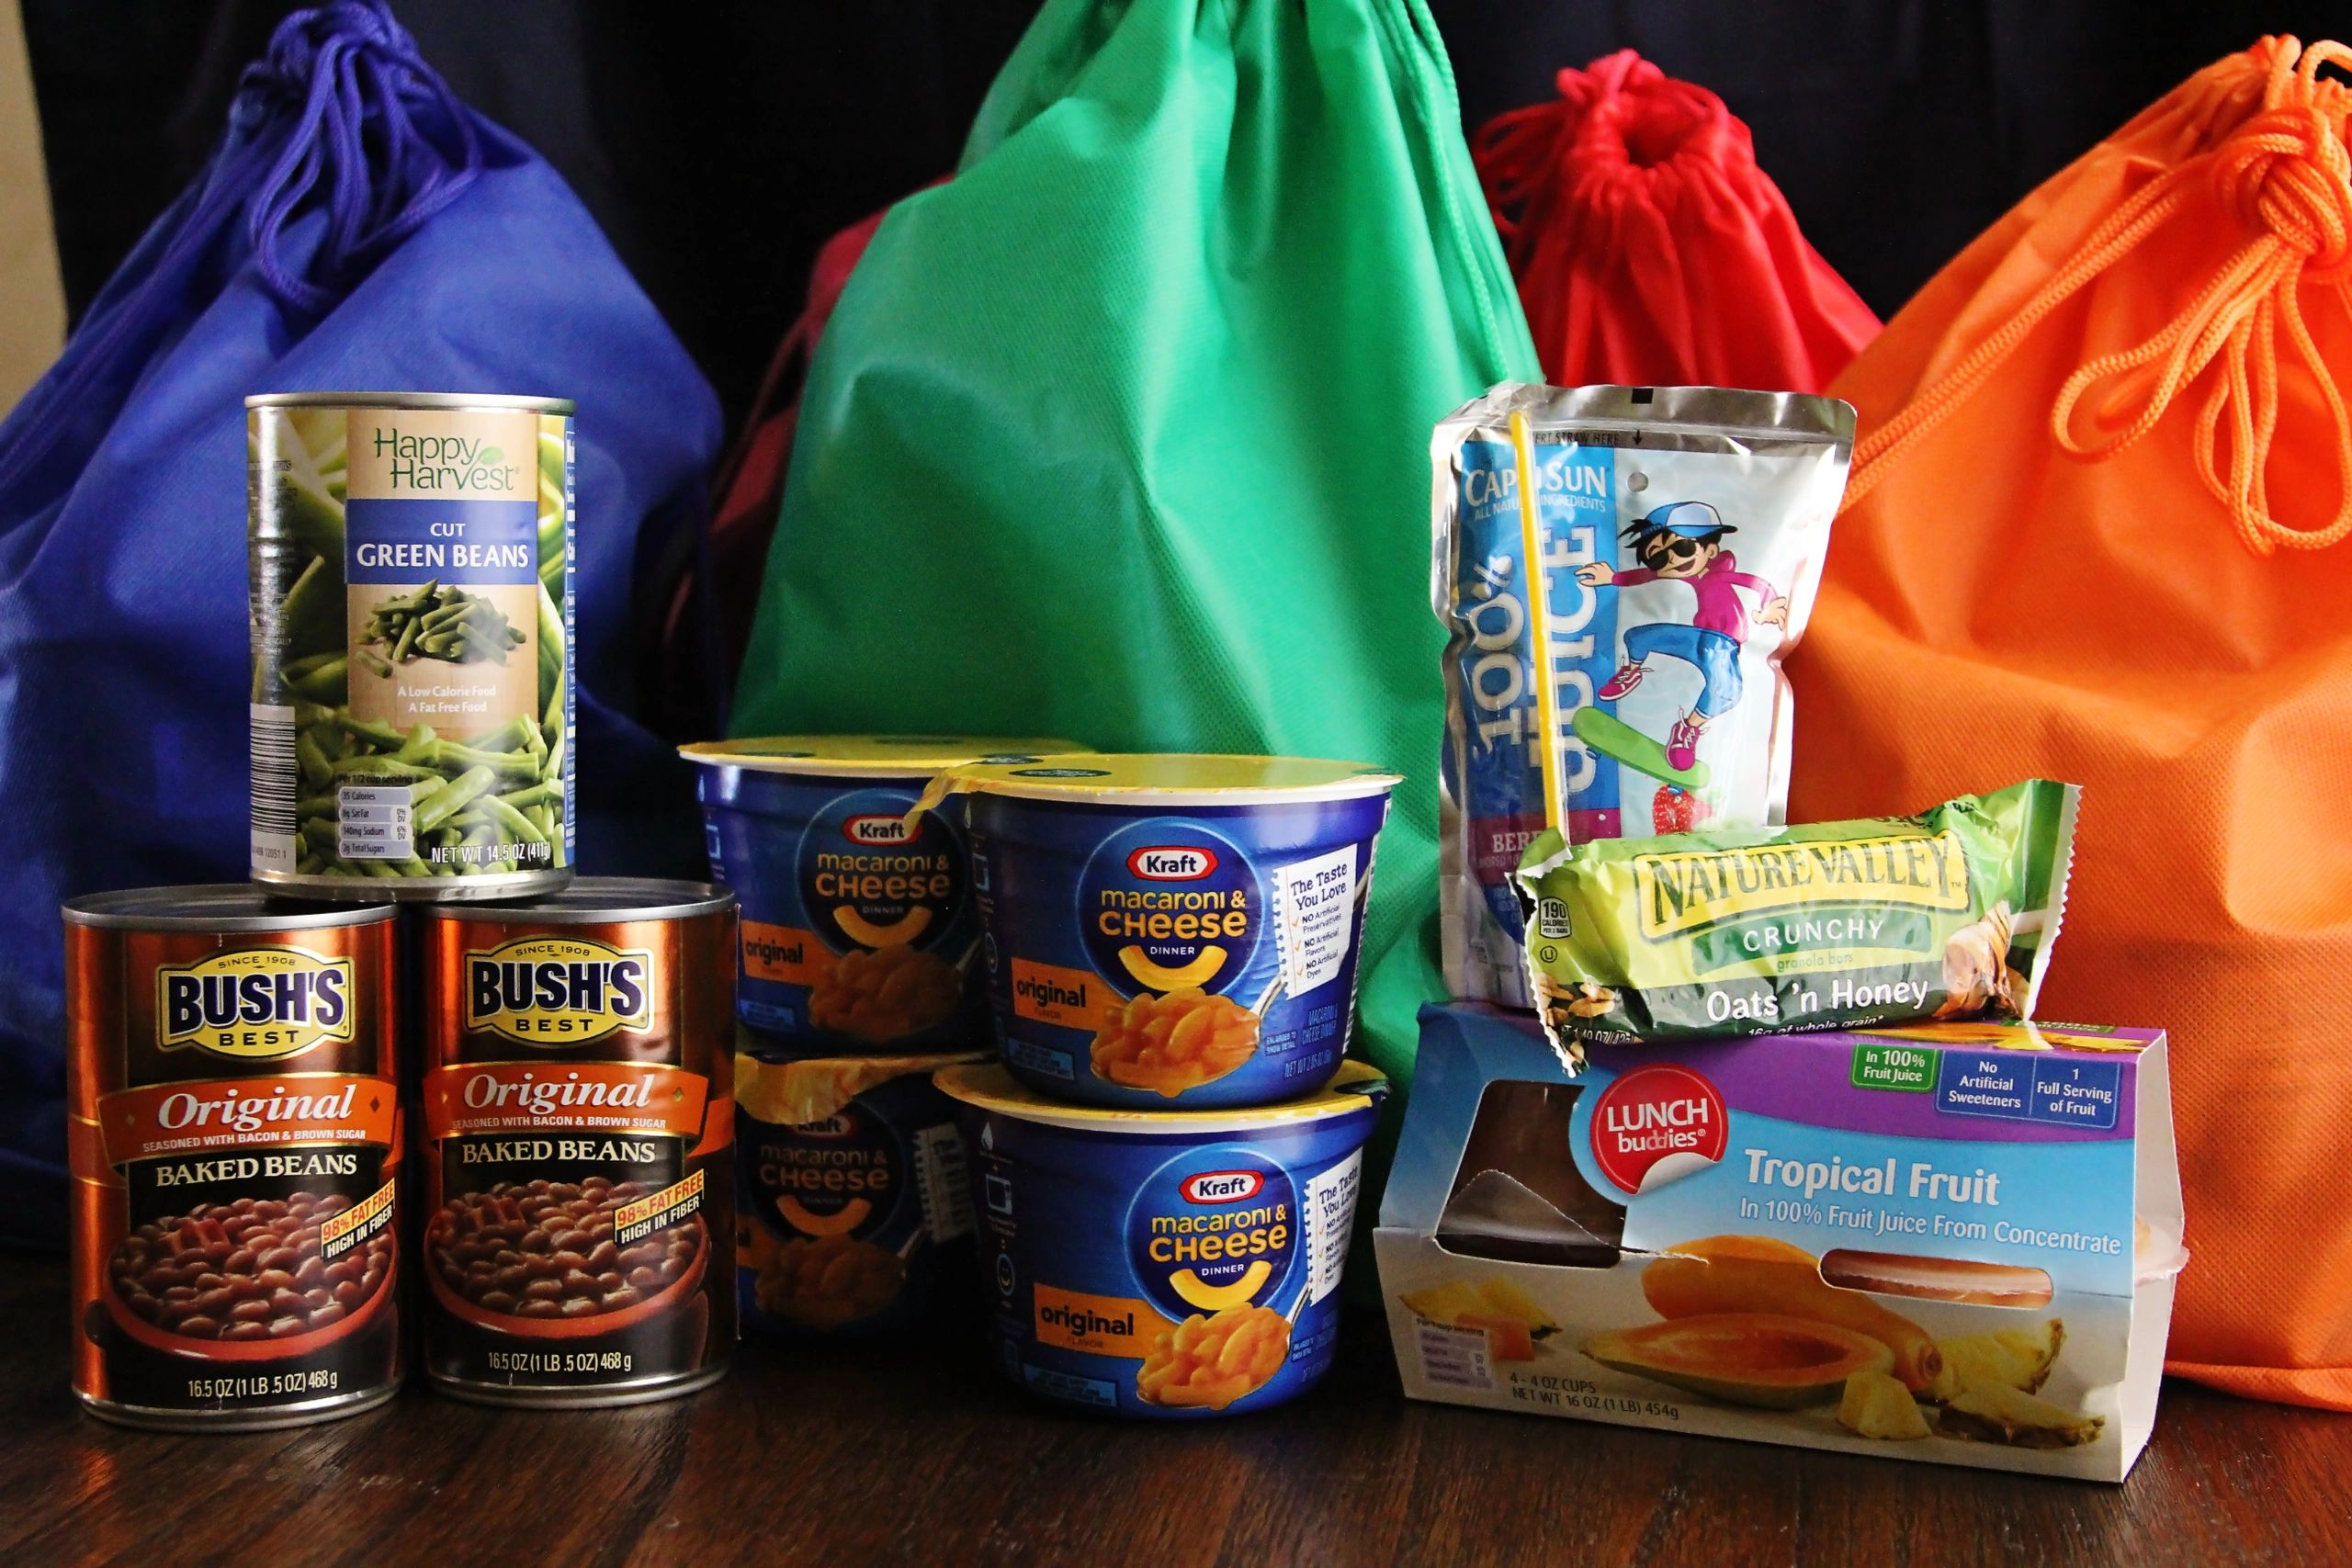 Image shows contents of healthy backpack meals to be distributed by teachers to hungry kids